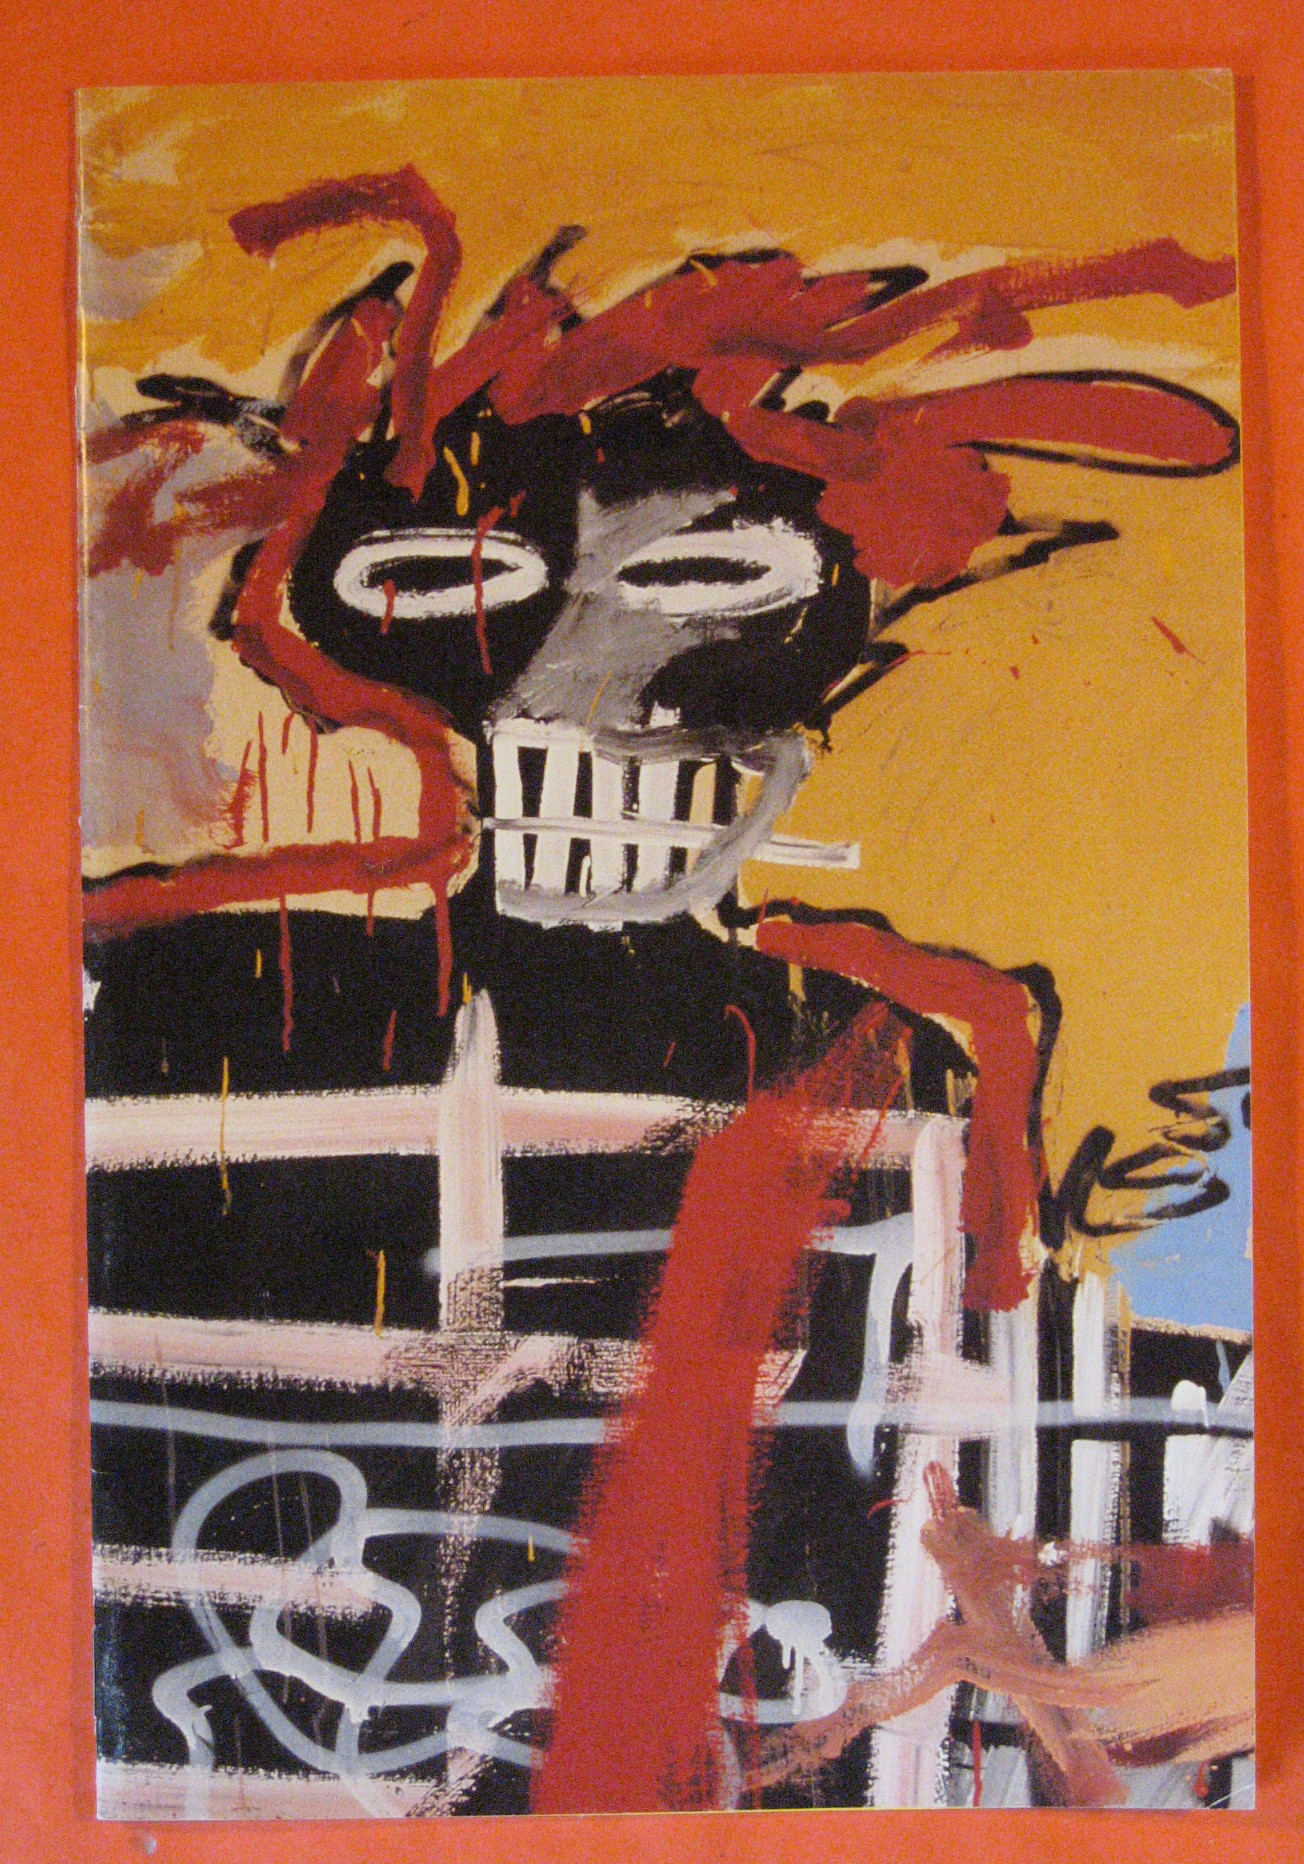 Jean-Michel Basquiat:  An Introduction for Students